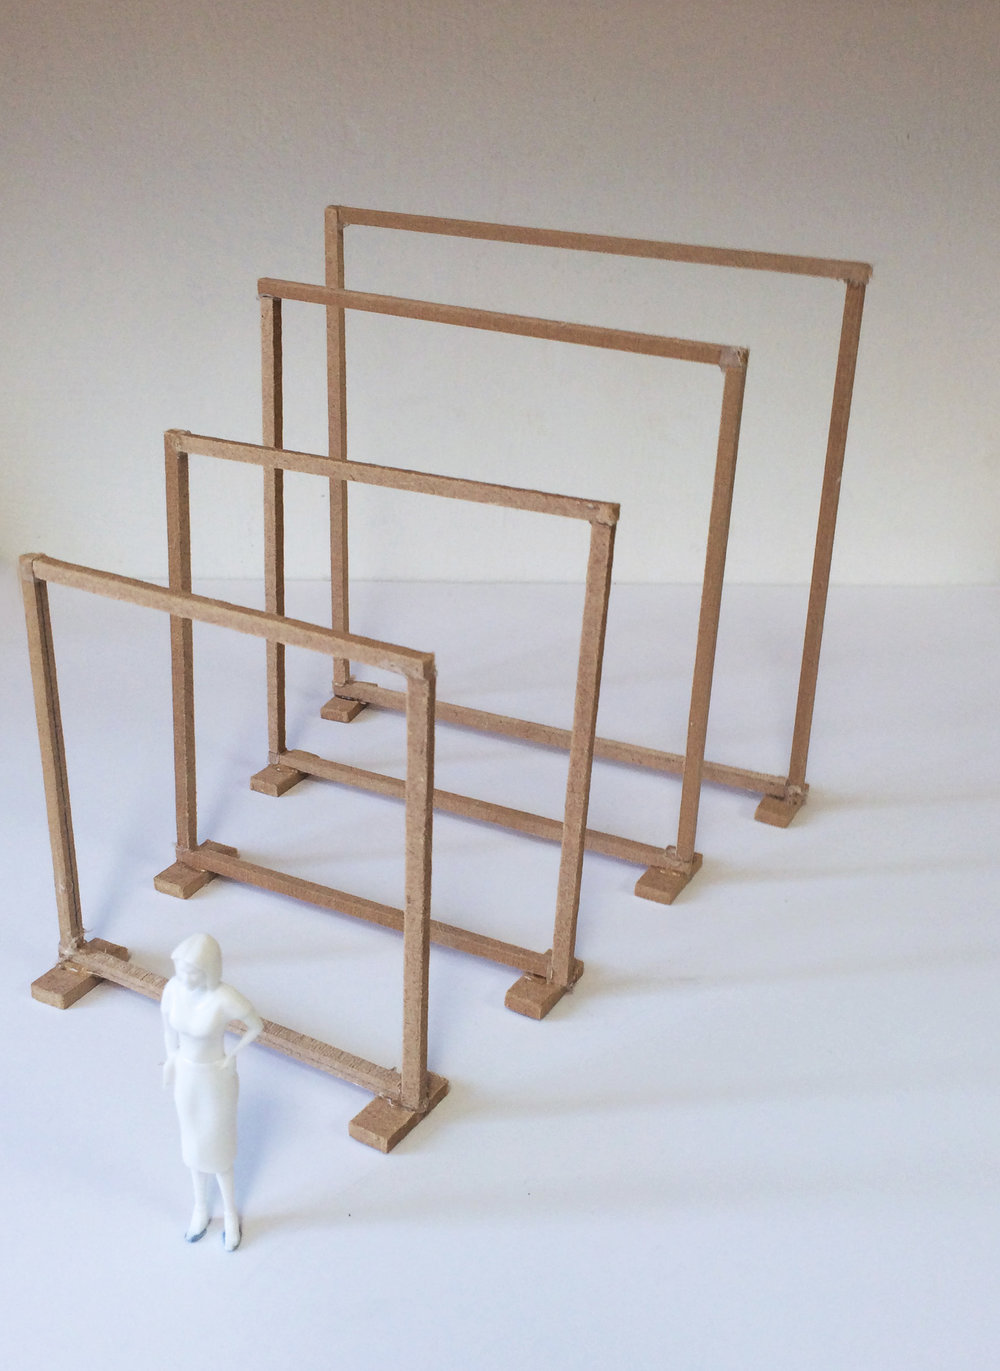 Early model of the frames